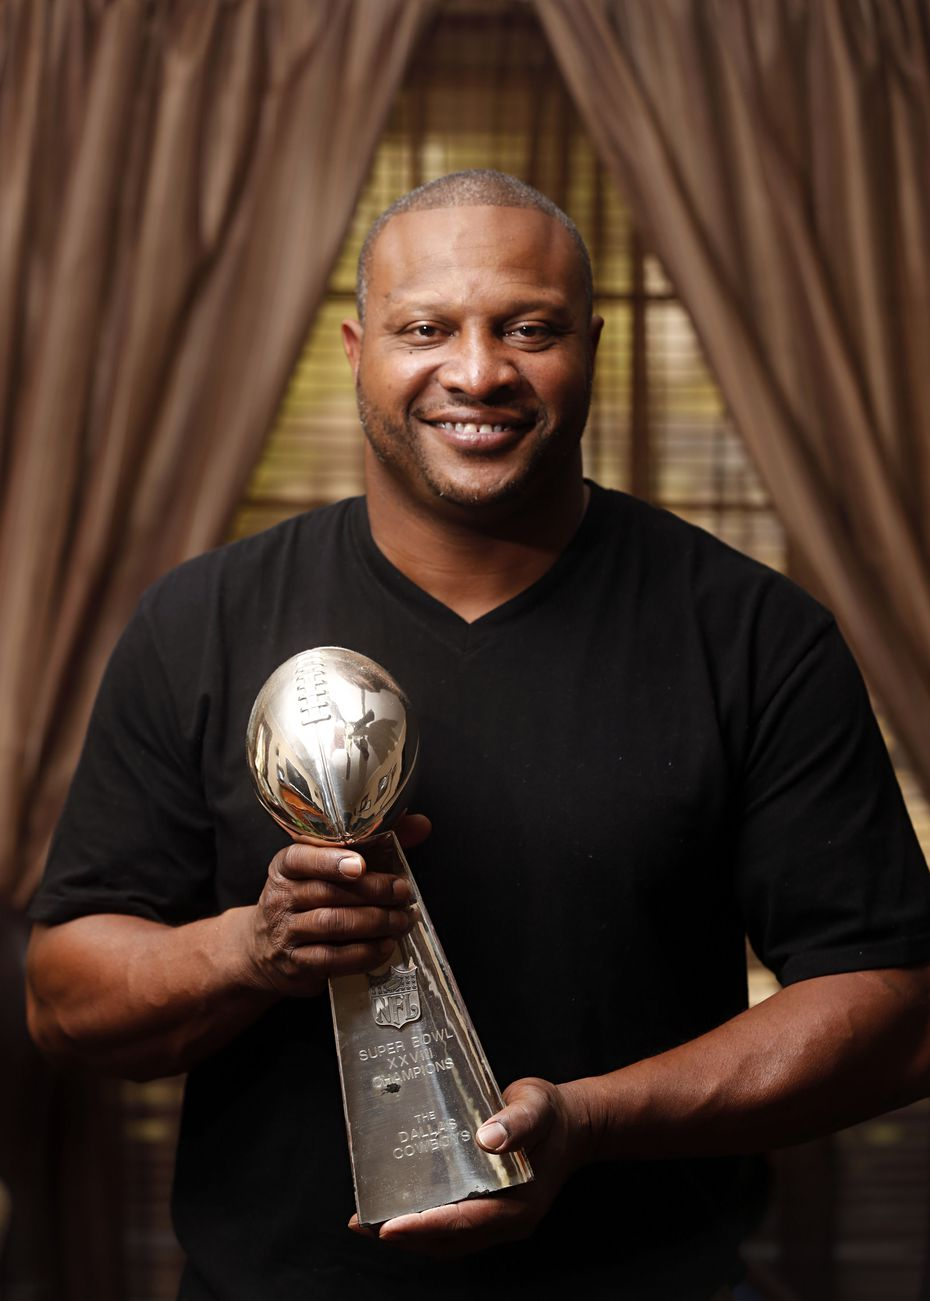 Former Dallas Cowboys running back Lincoln Coleman, pictured at his childhood home in Dallas on November 26, 2013., with the Super Bowl Trophy from 1993.